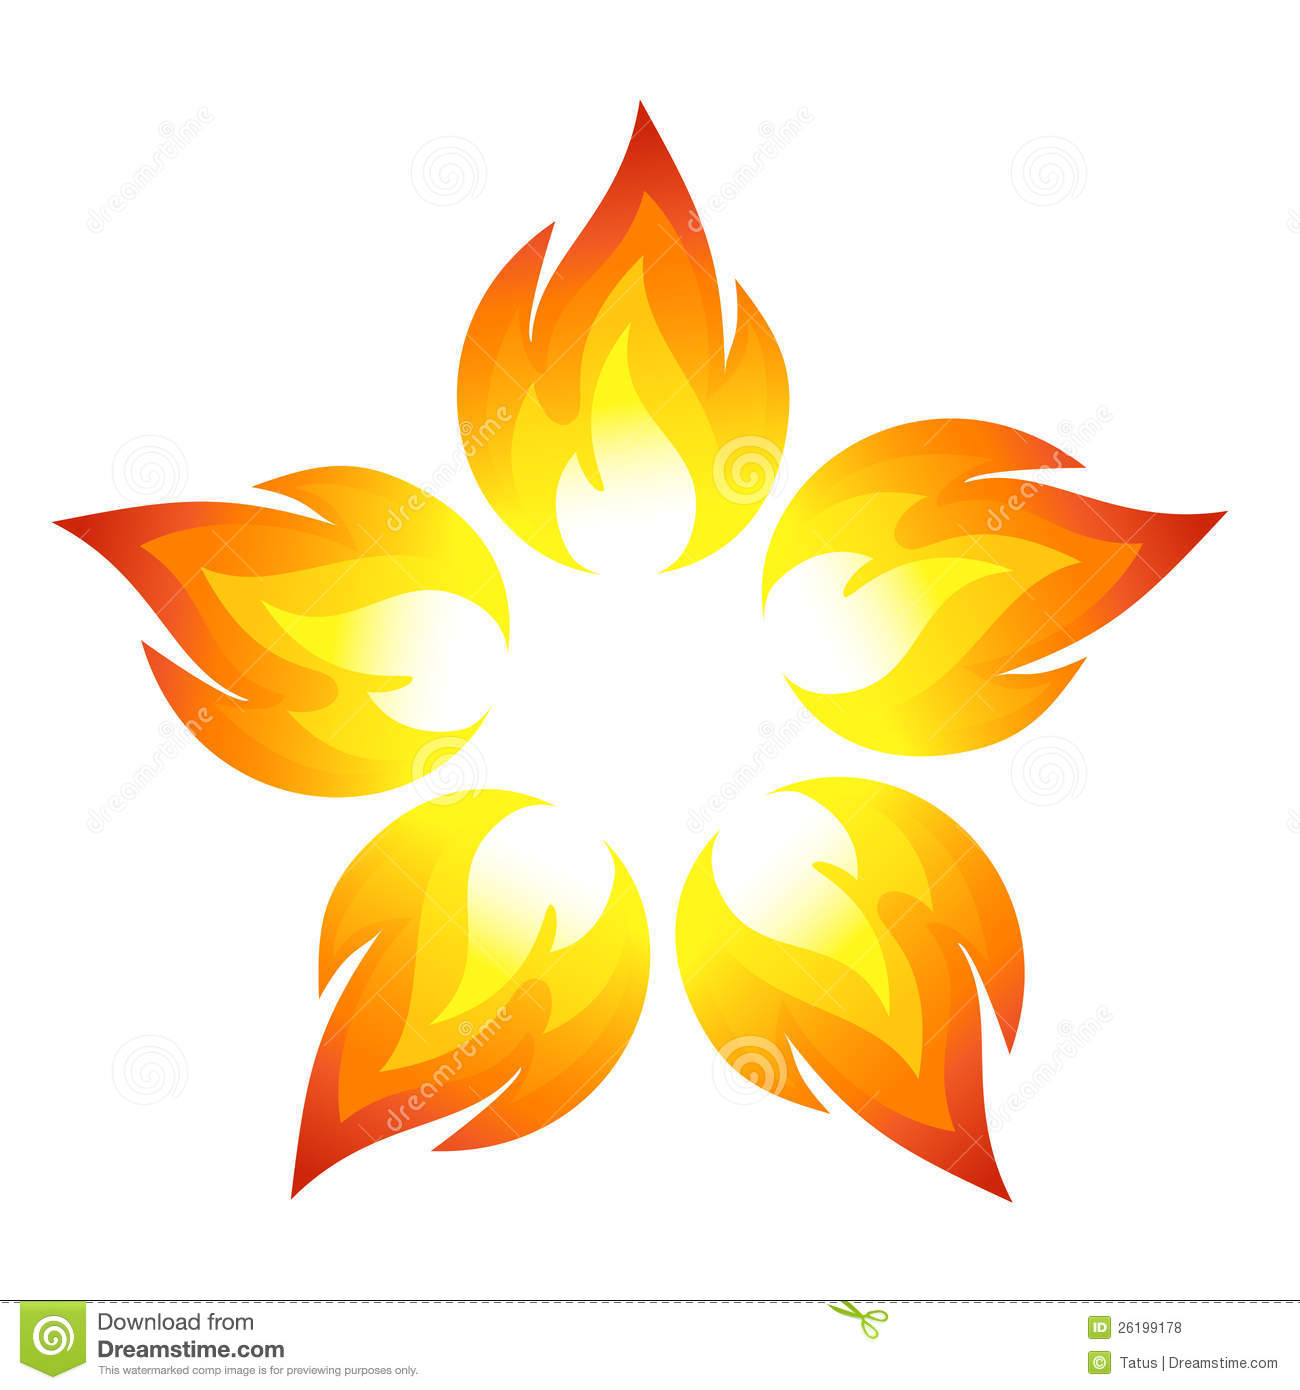 Fire Flower Royalty Free Stock Photos.